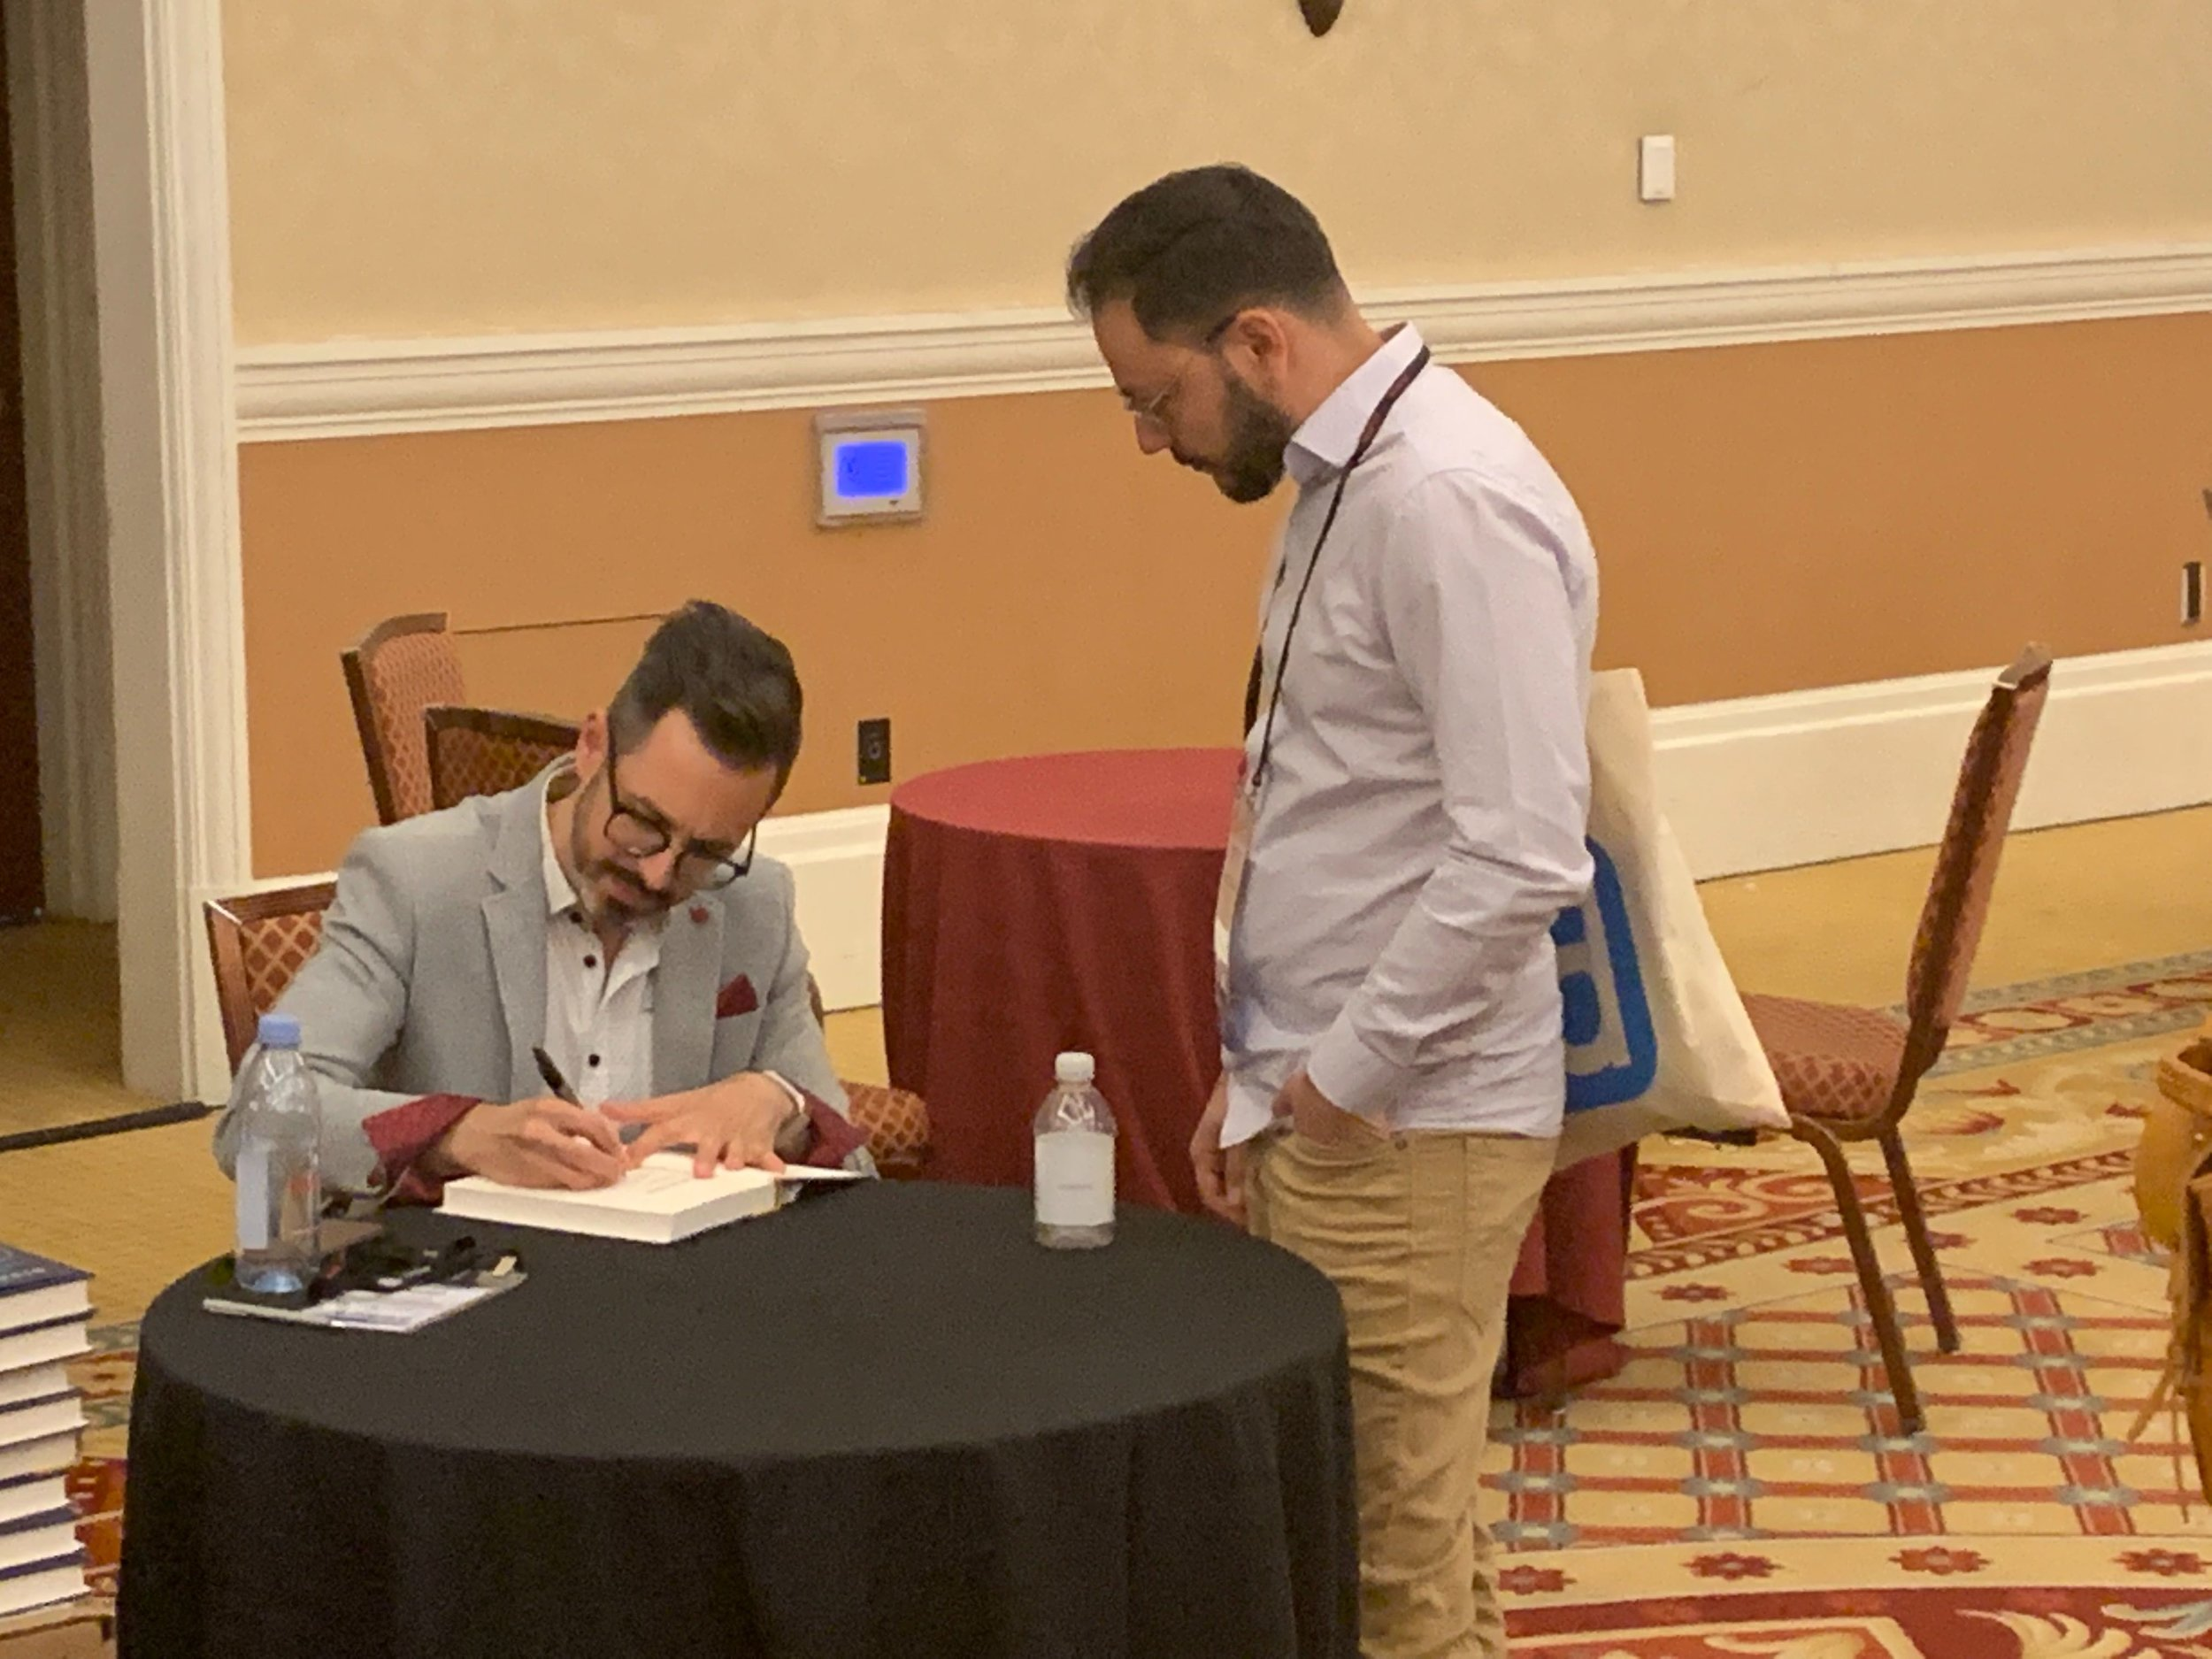 Rand Fishkin Book Signing Event at Mega Paw 2019 Las Vegas:  Hosted by Unhooked